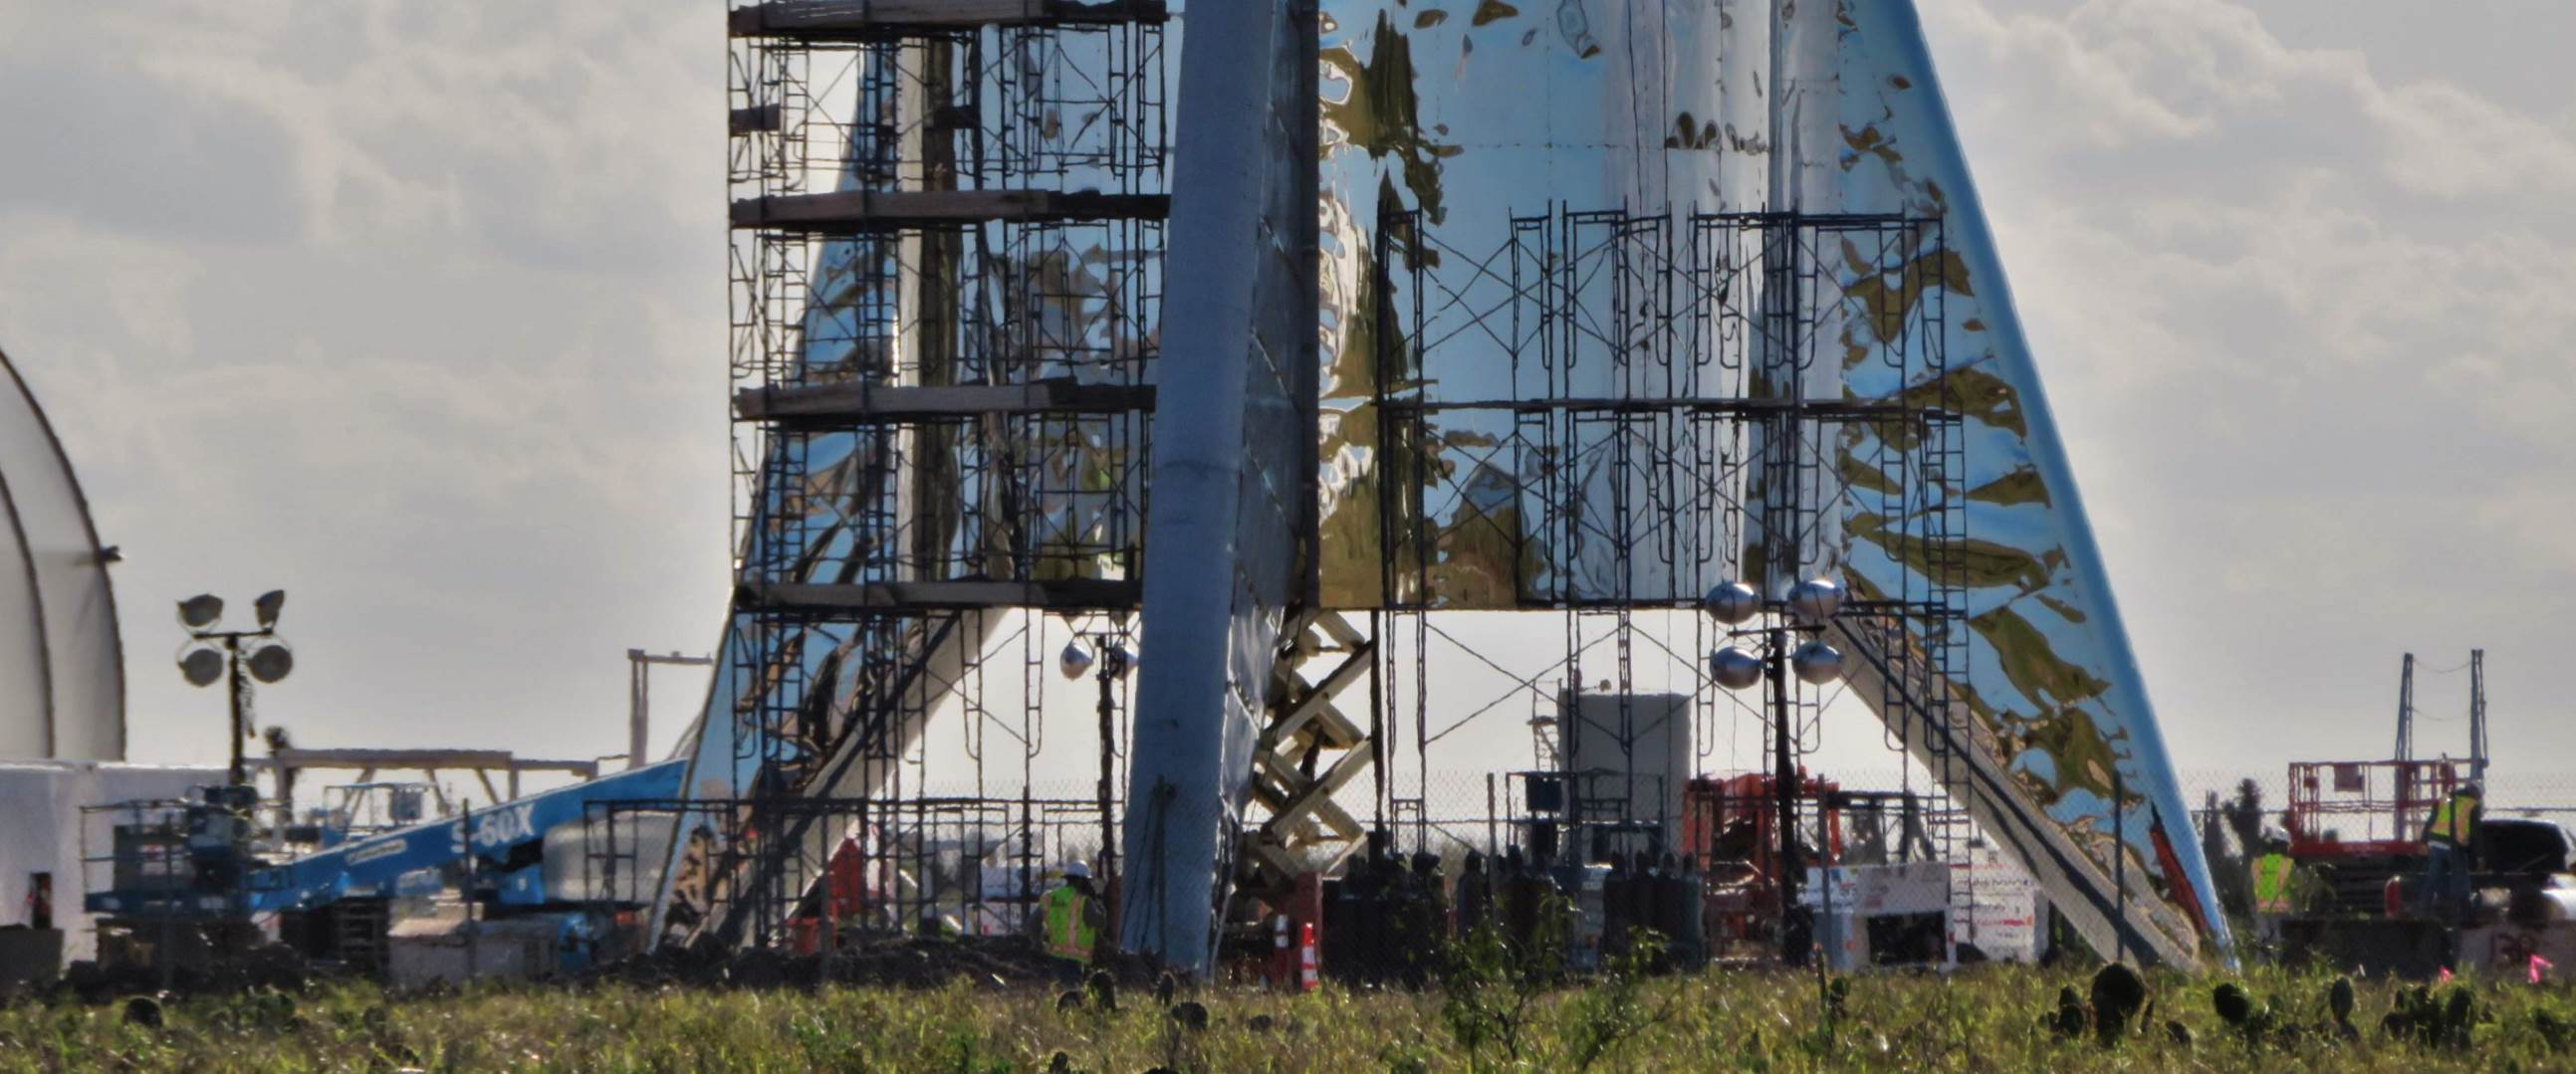 Boca Chica Starship dome work 012719 (NASASpaceflight – bocachicagal) 2 crop (c)